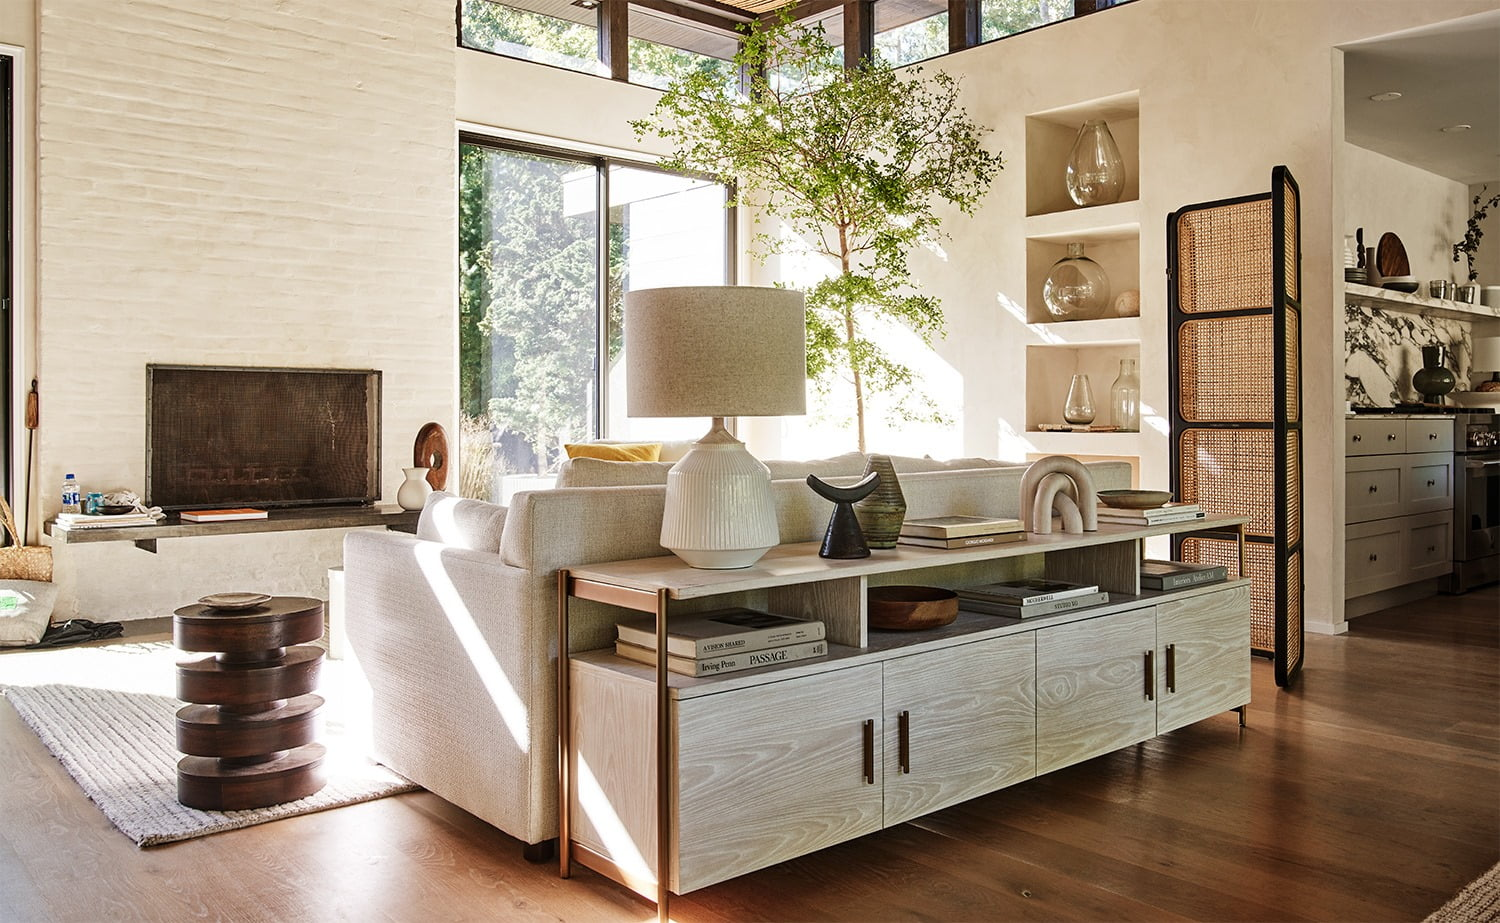 Sustainable furniture & home decor: wooden furniture filling a living room in the daytime